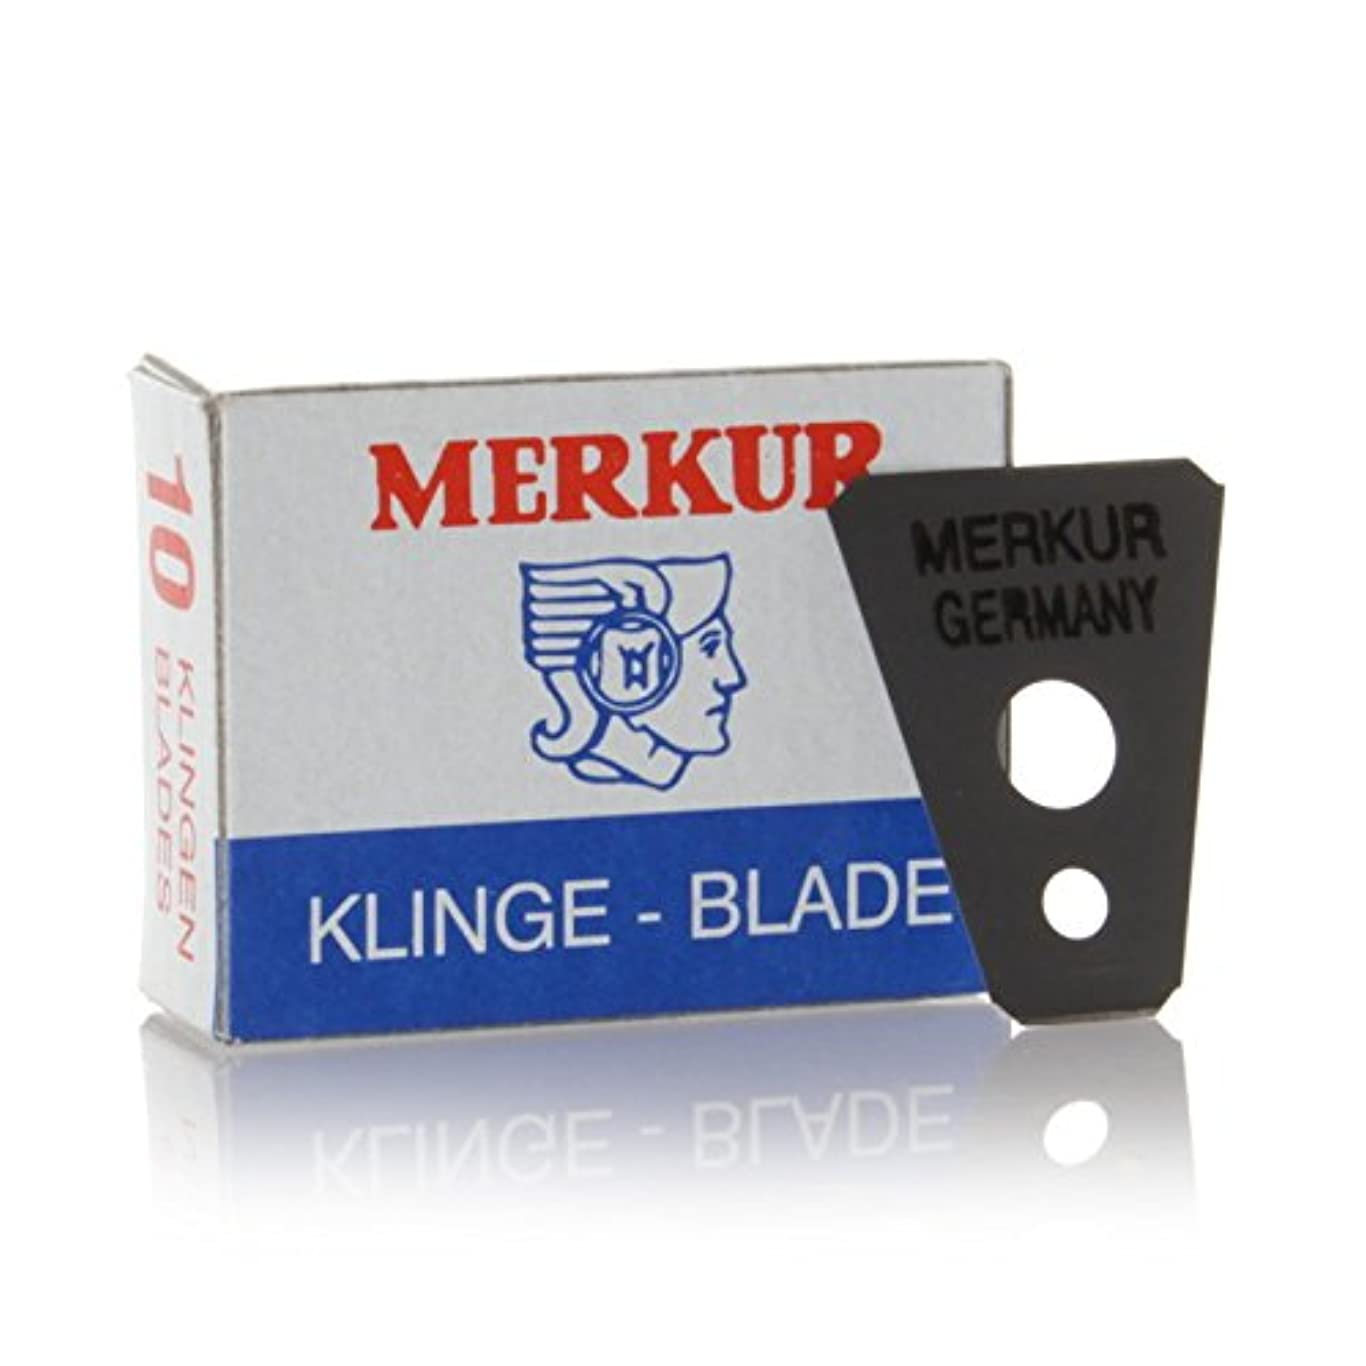 MERKUR Solingen - Razor blades for moustache shaver, 10 pieces, 90908100